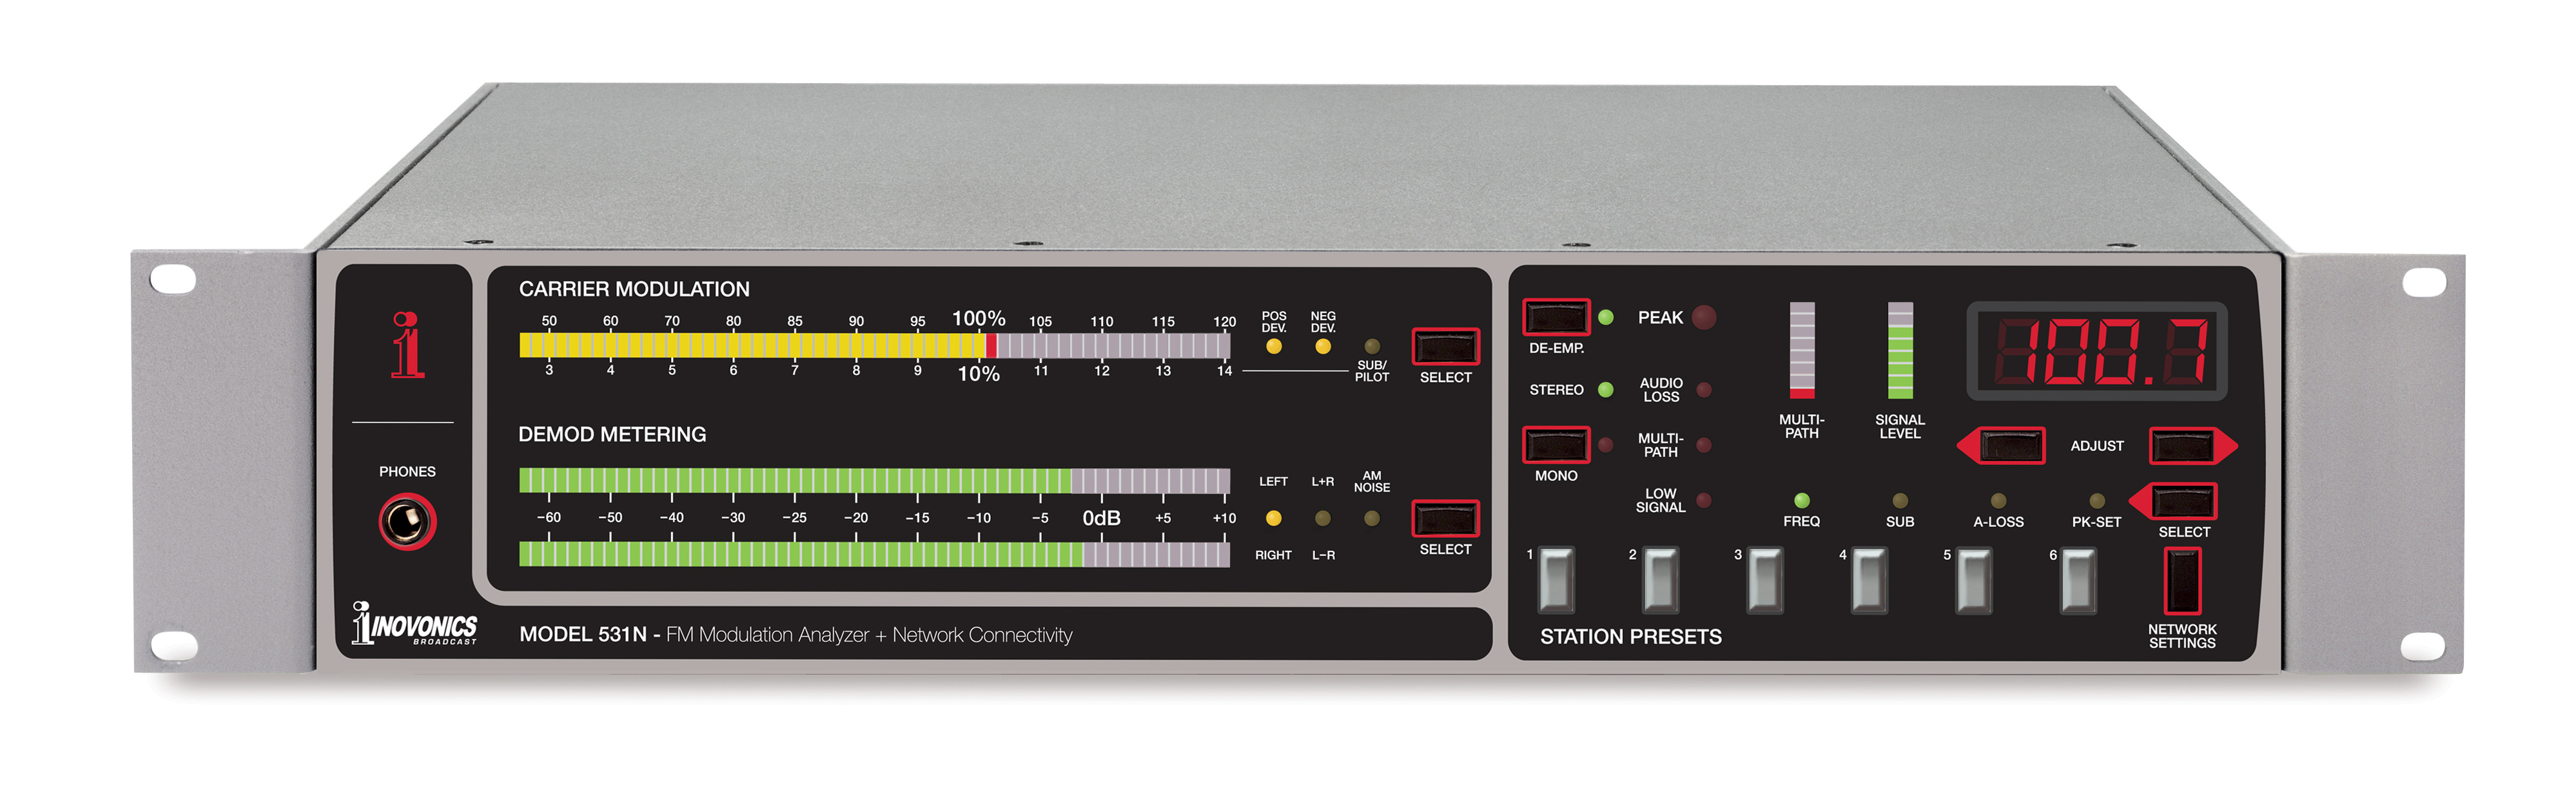 Fm Modulation Monitor Model 531n Inovonics Broadcast Inc Receiver Product Image